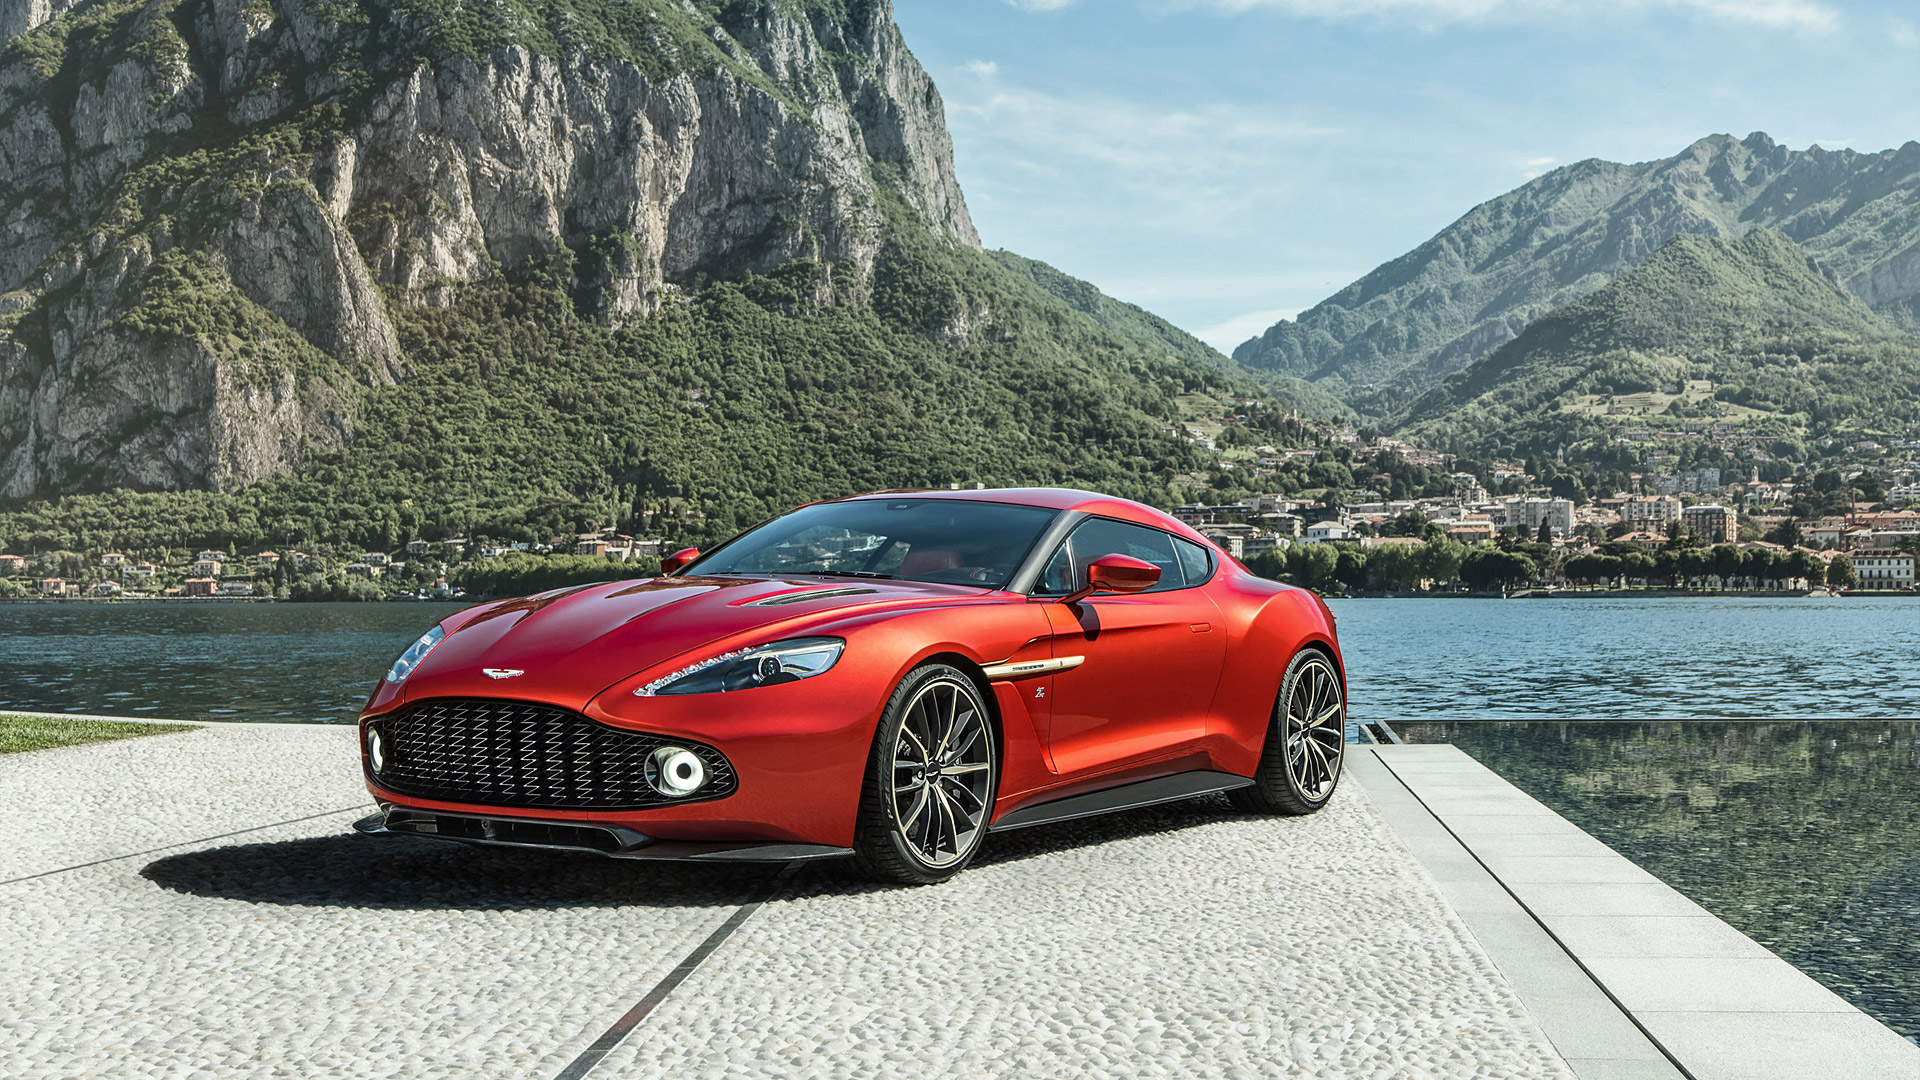 2017 Aston Martin Vanquish Zagato Wallpapers HD Images   WSupercars 1920x1080